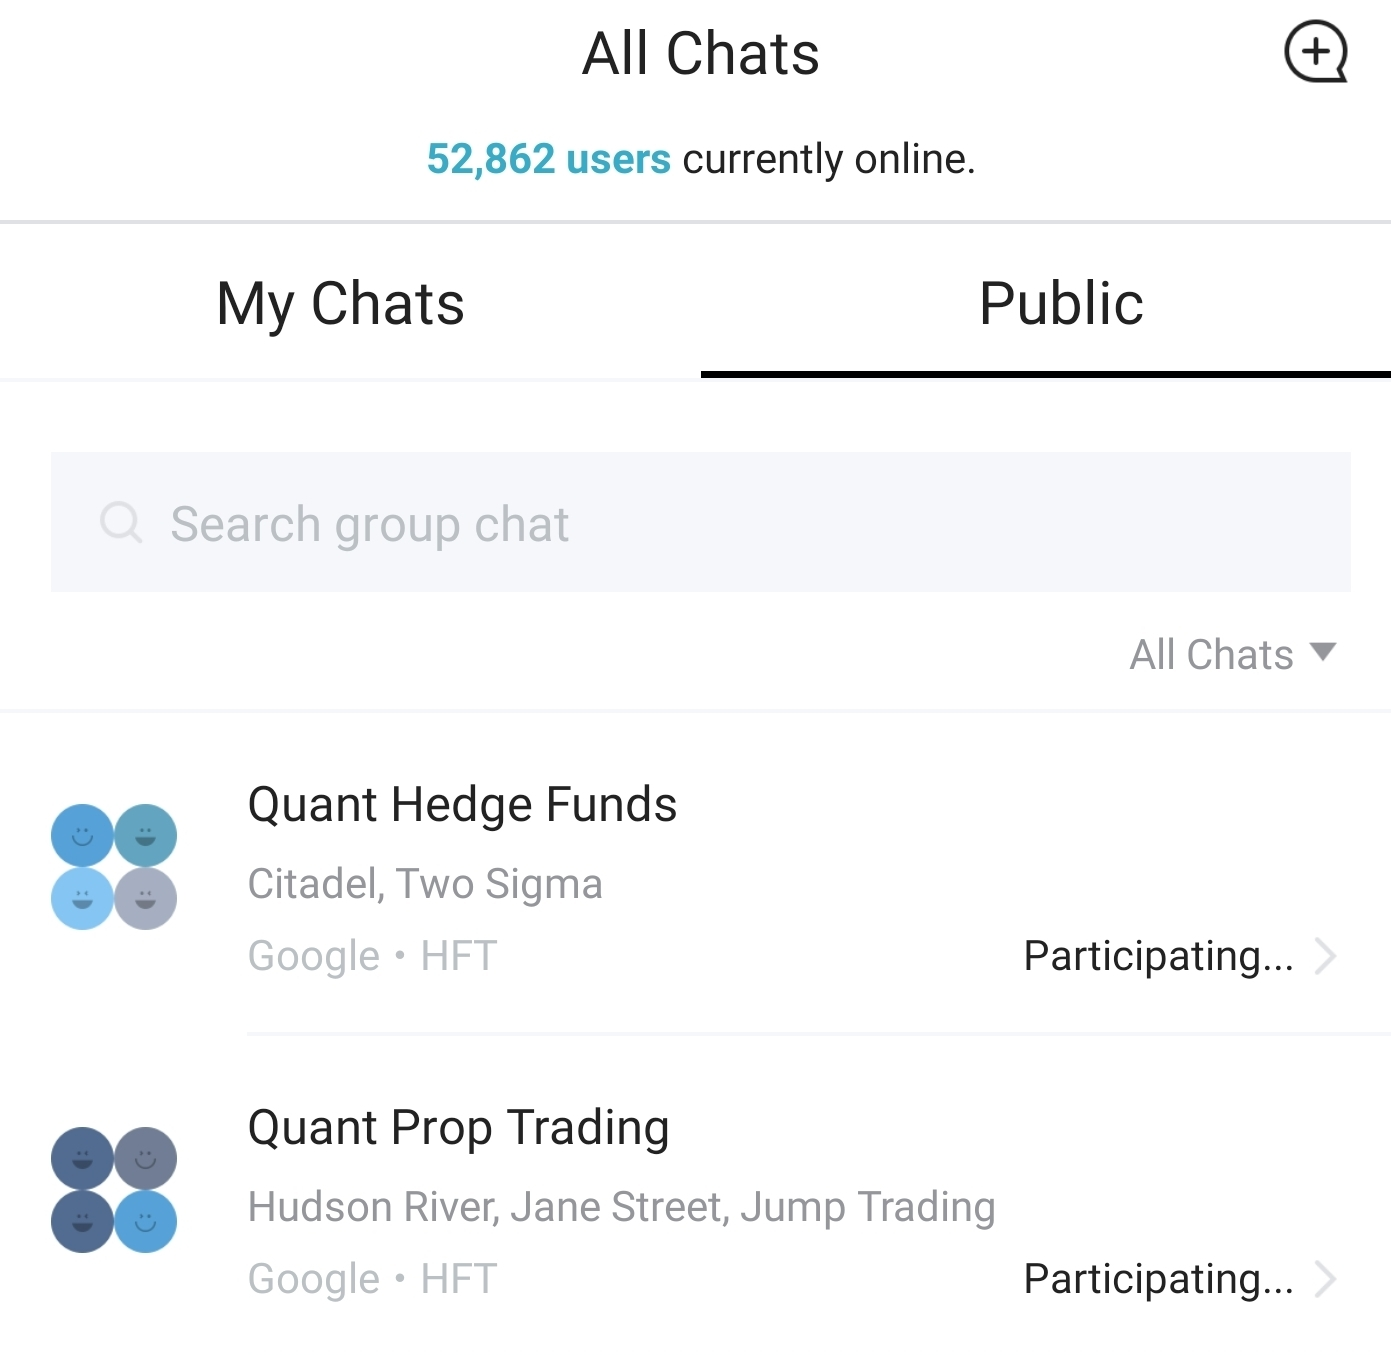 Invitation to quant trading group chat